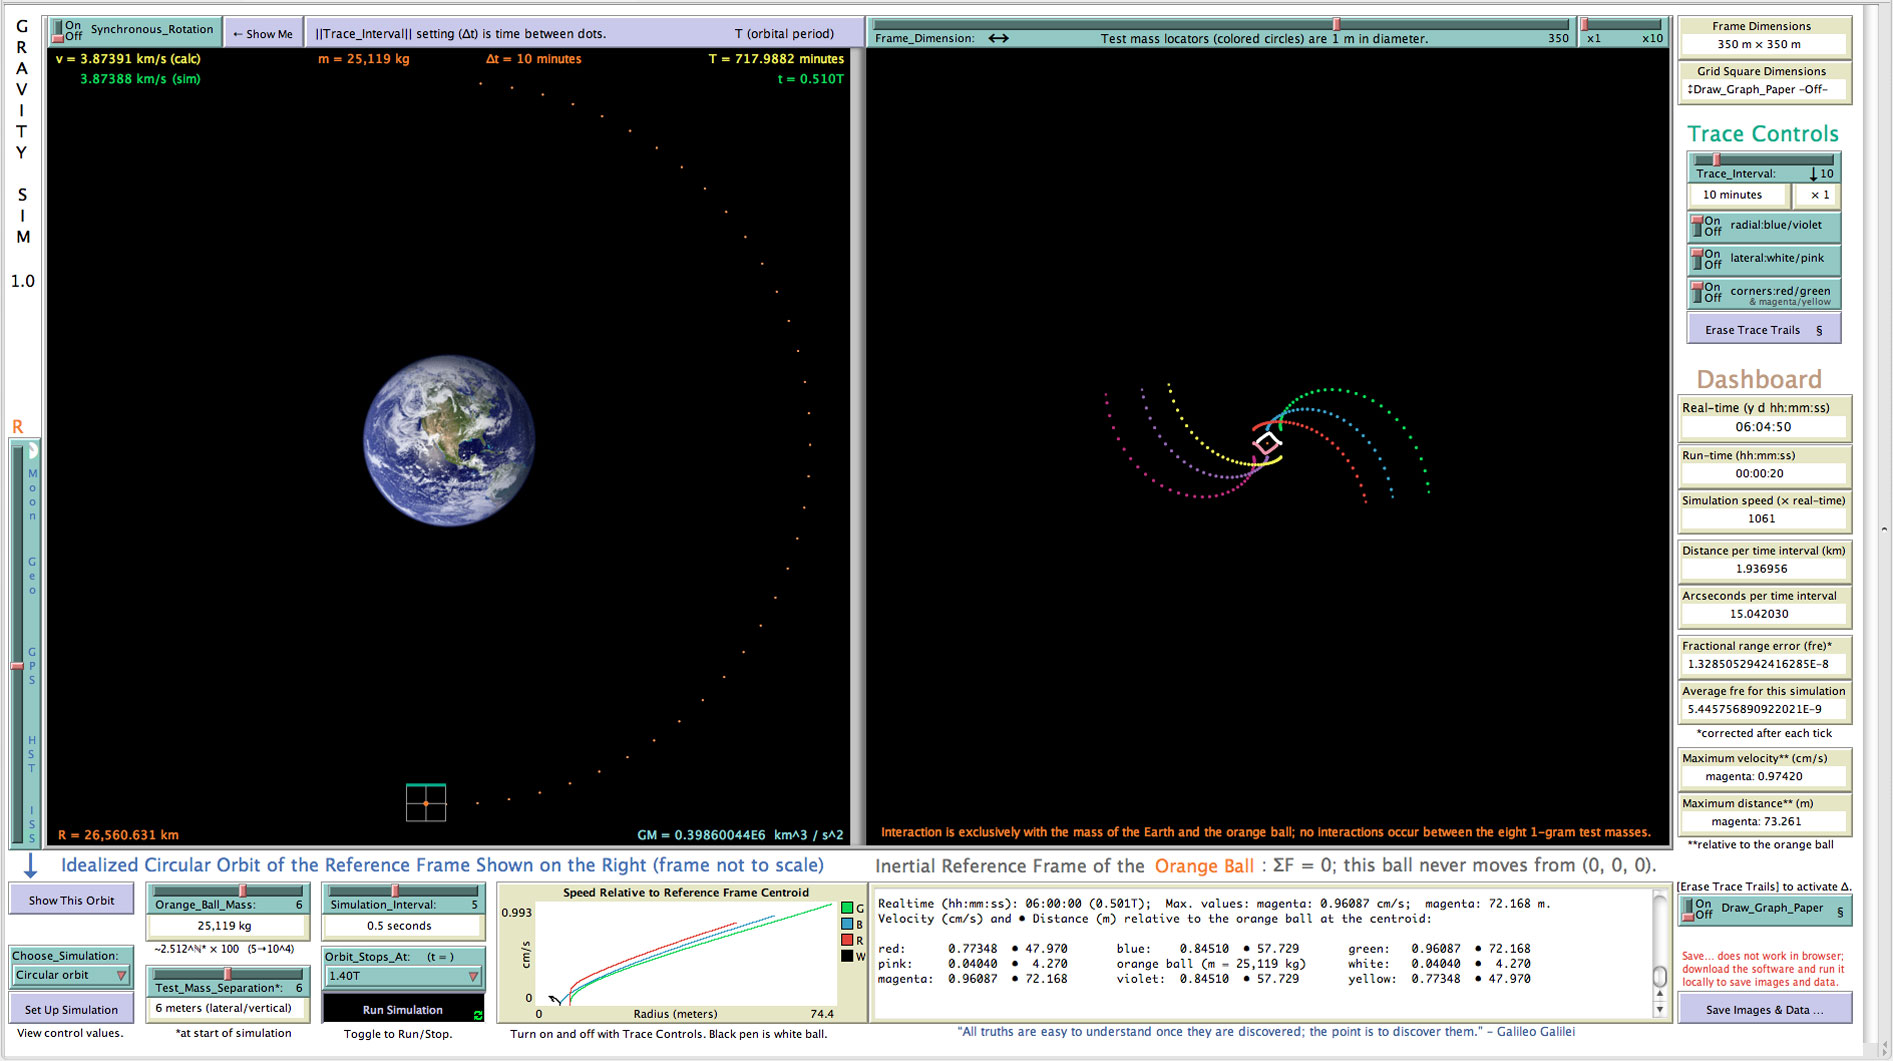 Simulation of gravitational tidal effects.